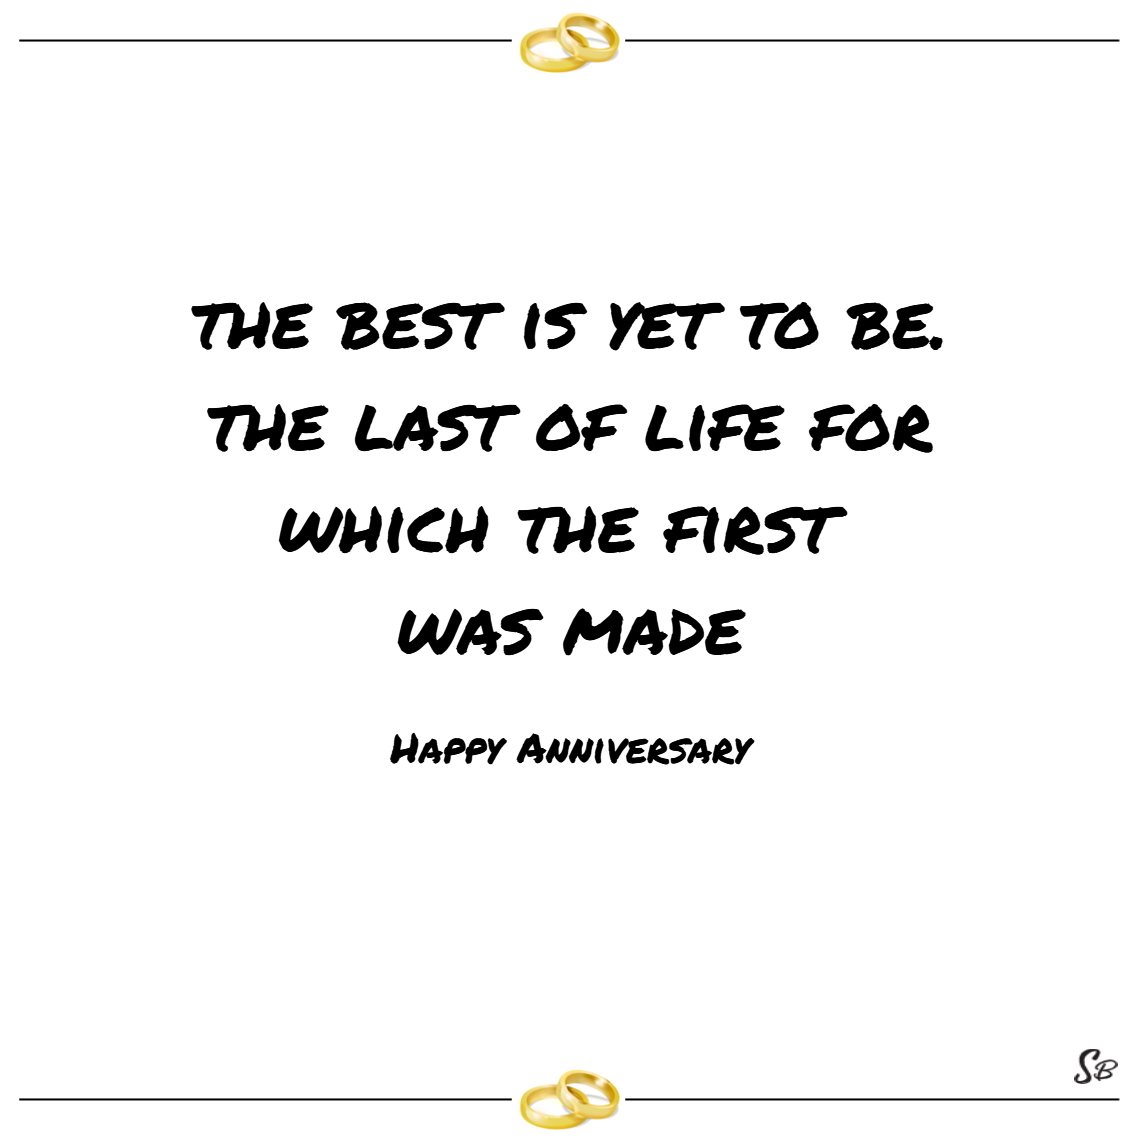 The best is yet to be. the last of life for which the first was made. – happy anniversary